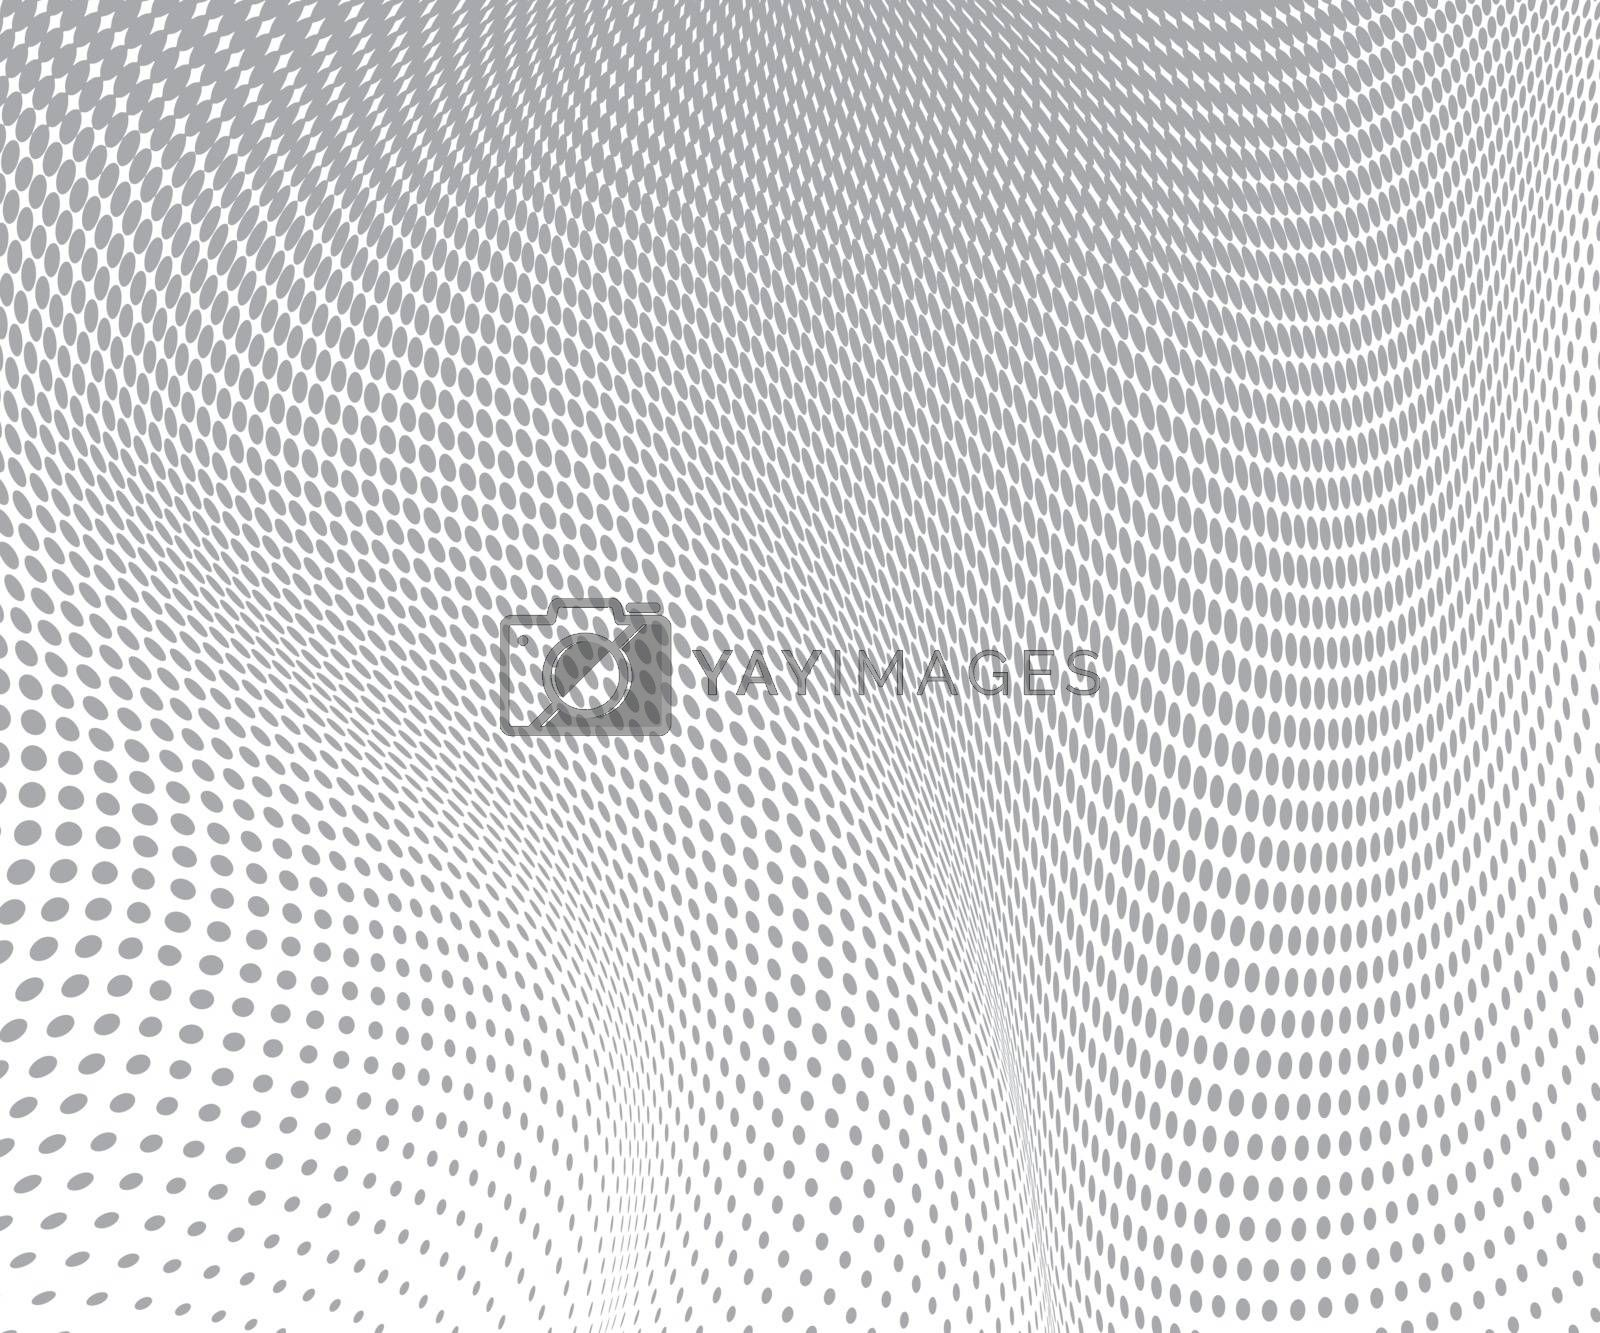 gray circles on white background. Halftone wave texture. Vector illustration.